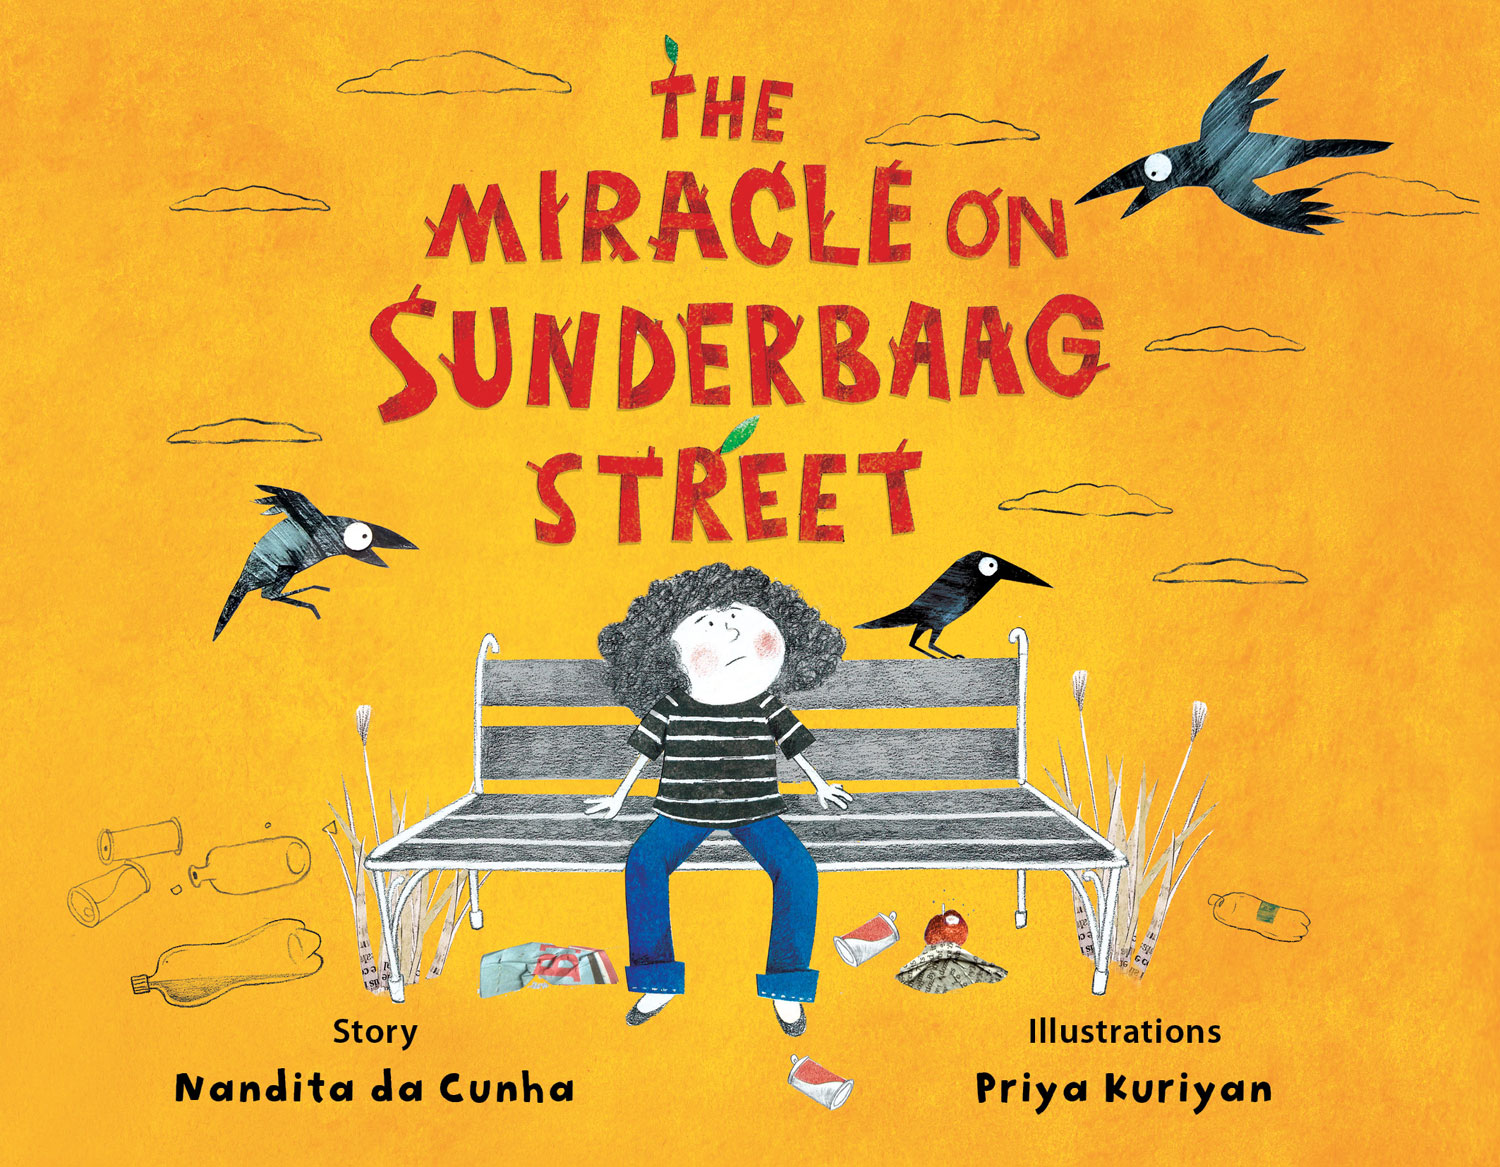 You are currently viewing 'The Miracle on Sunderbaag Street' by Nandita da Cunha